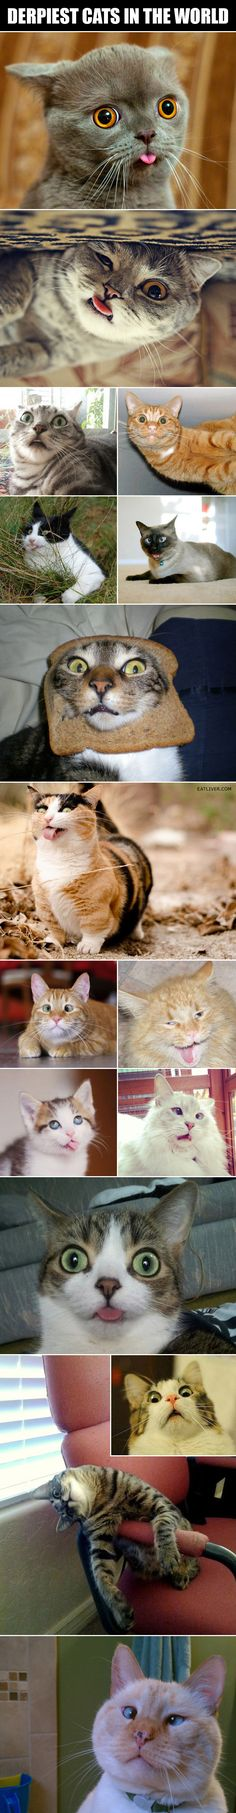 The Derpiest Cats In The World cute animals cat cats adorable animal kittens pets kitten funny pictures funny animals funny cats Cute Funny Animals, Funny Animal Pictures, Funny Cute, Cute Cats, Funny Pics, Super Funny, Funny Images, Hilarious, Crazy Cat Lady